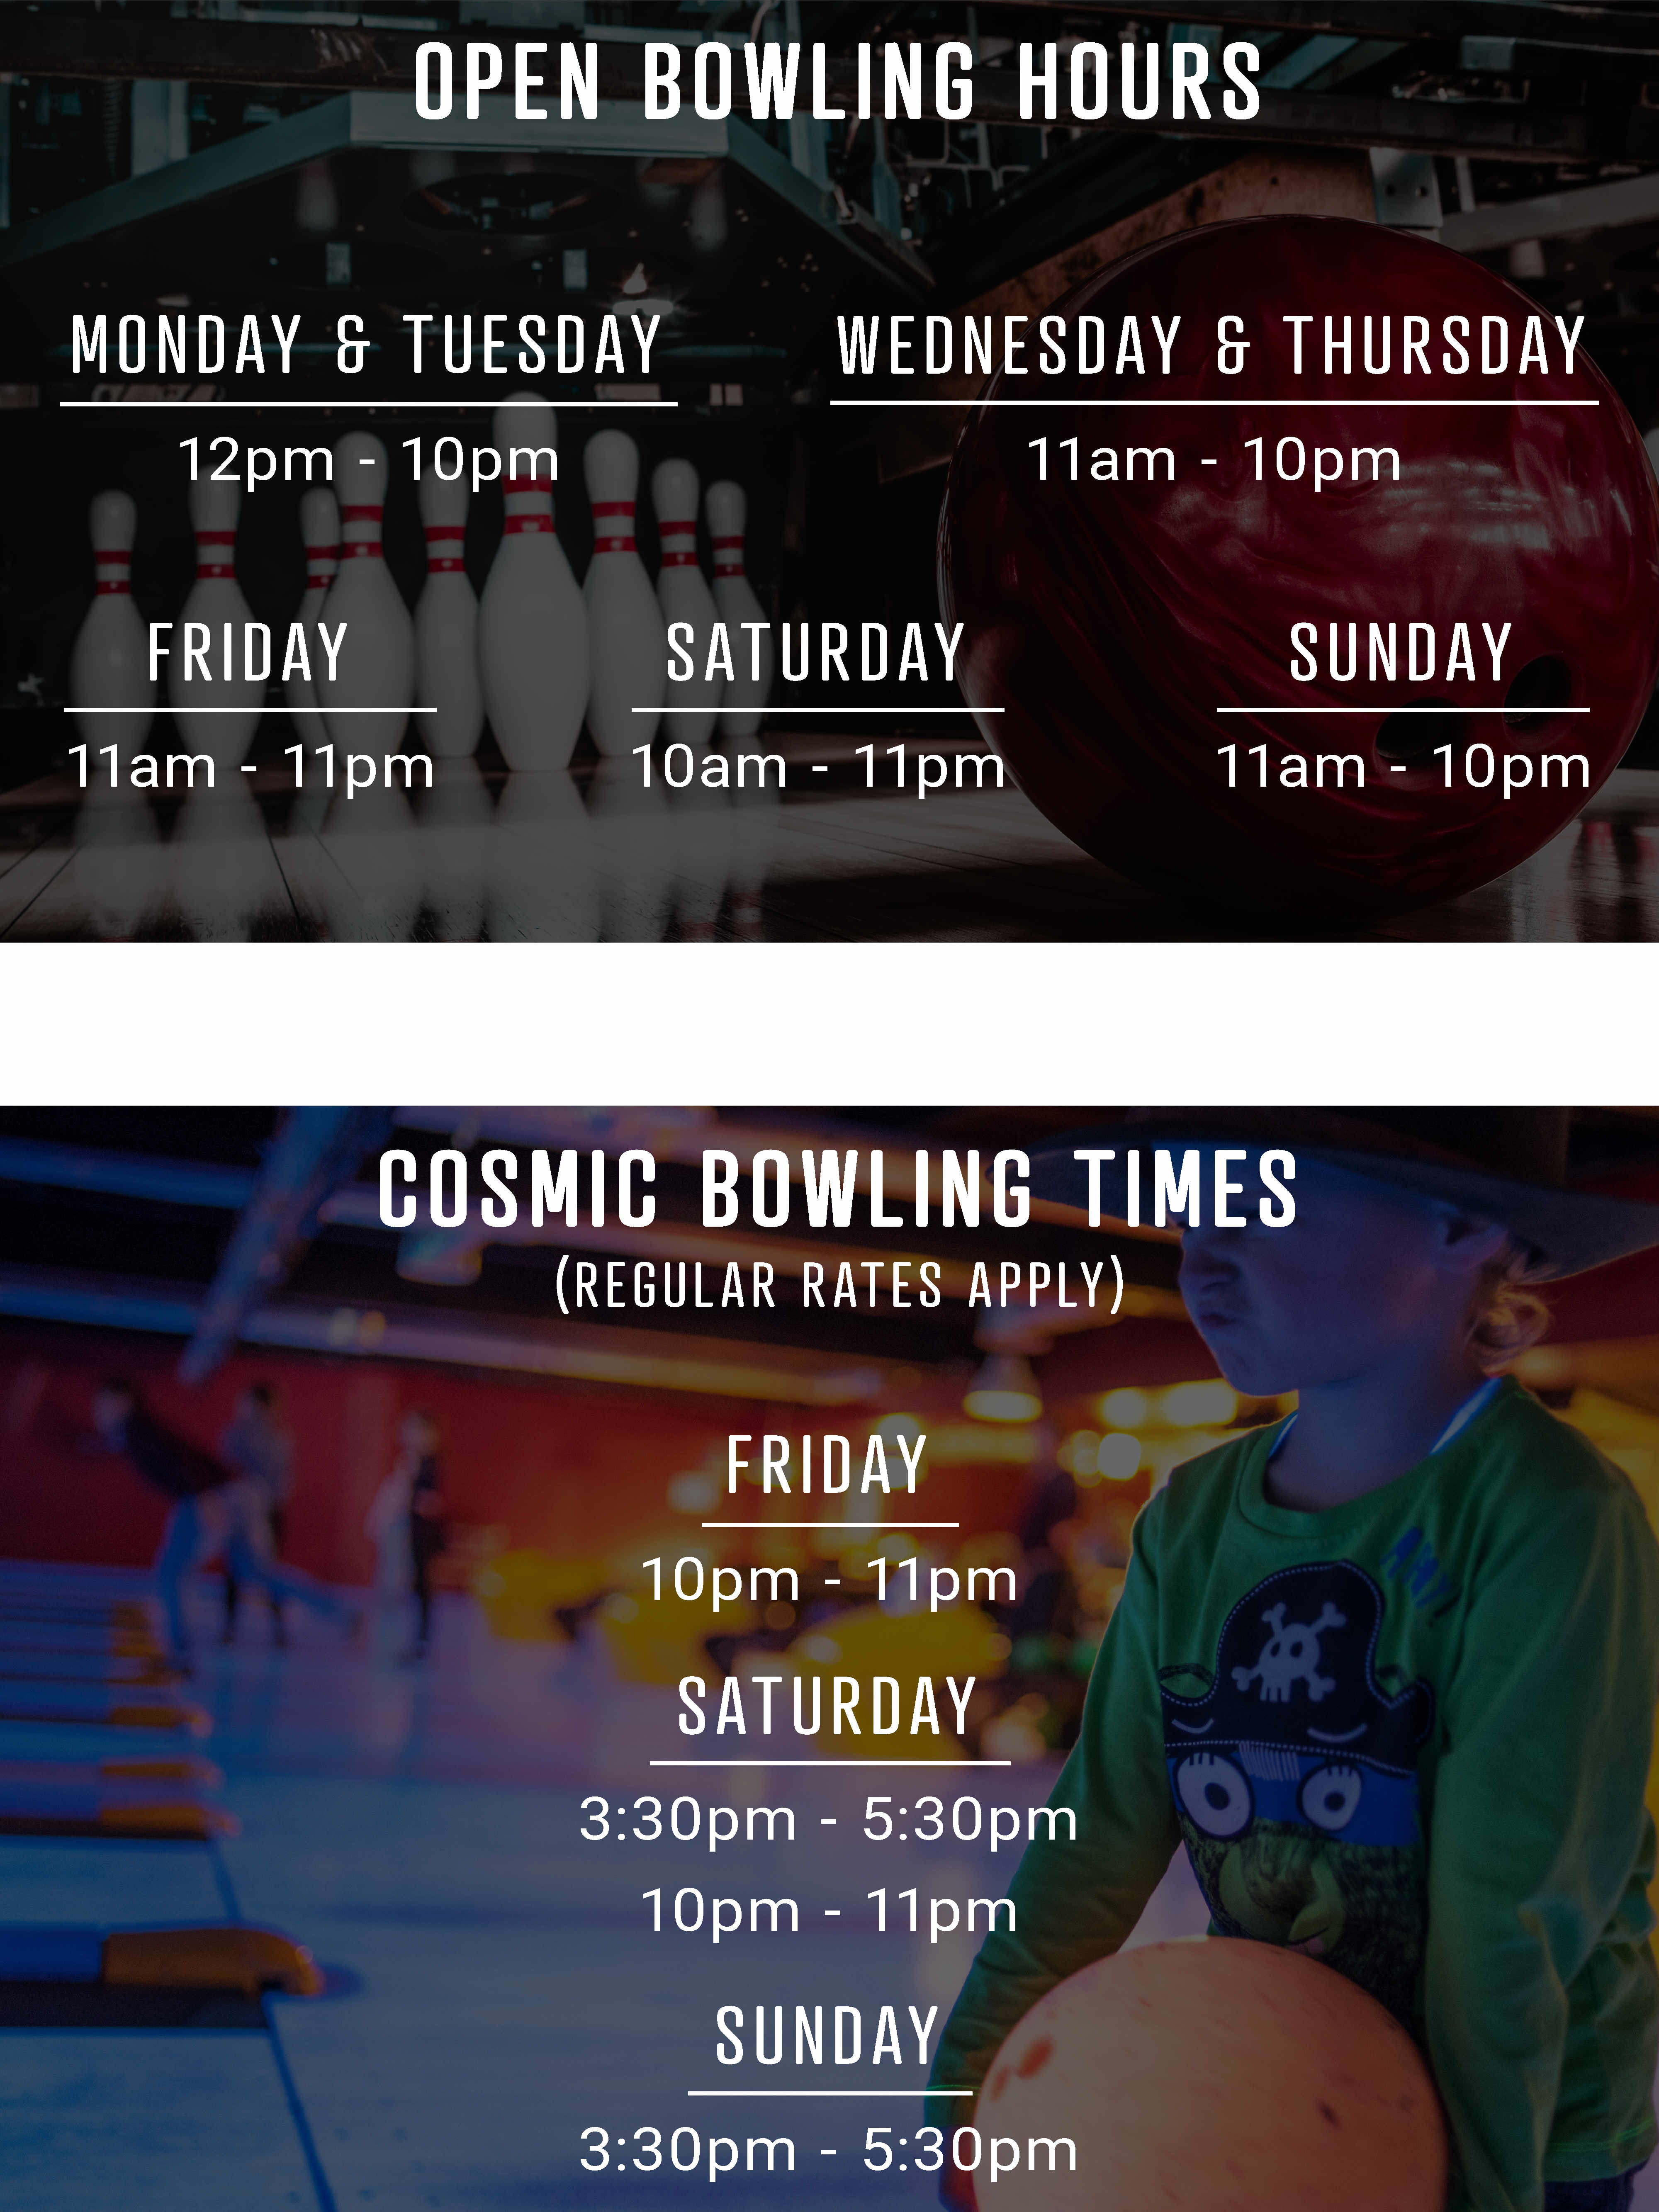 Open bowling hours and cosmic bowling hours